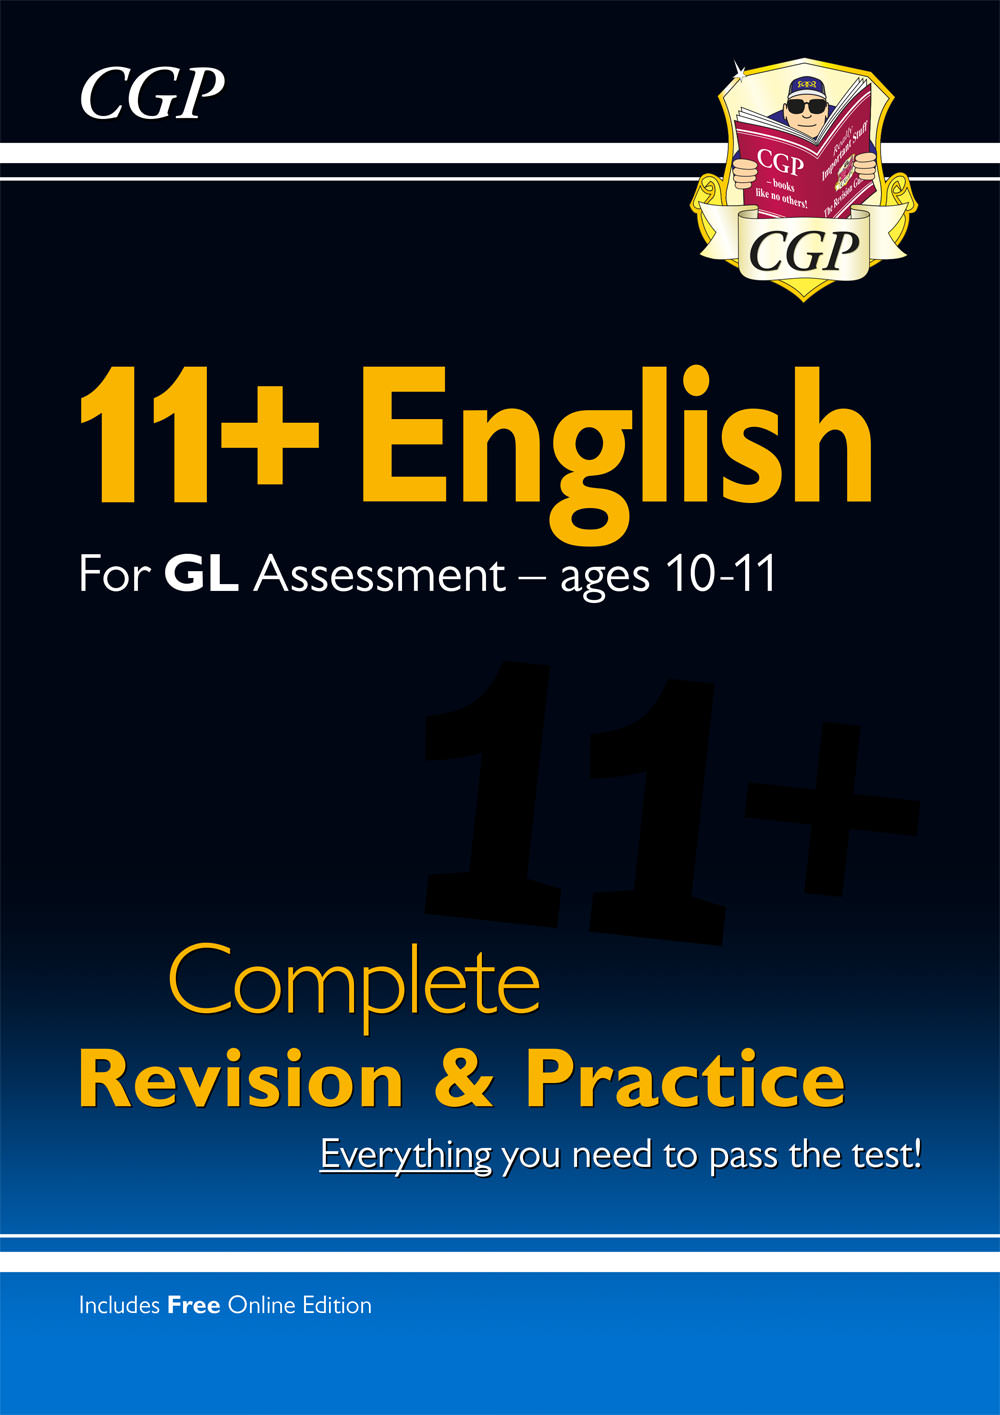 EHSE1 - New 11+ GL English Complete Revision and Practice - Ages 10-11 (with Online Edition)